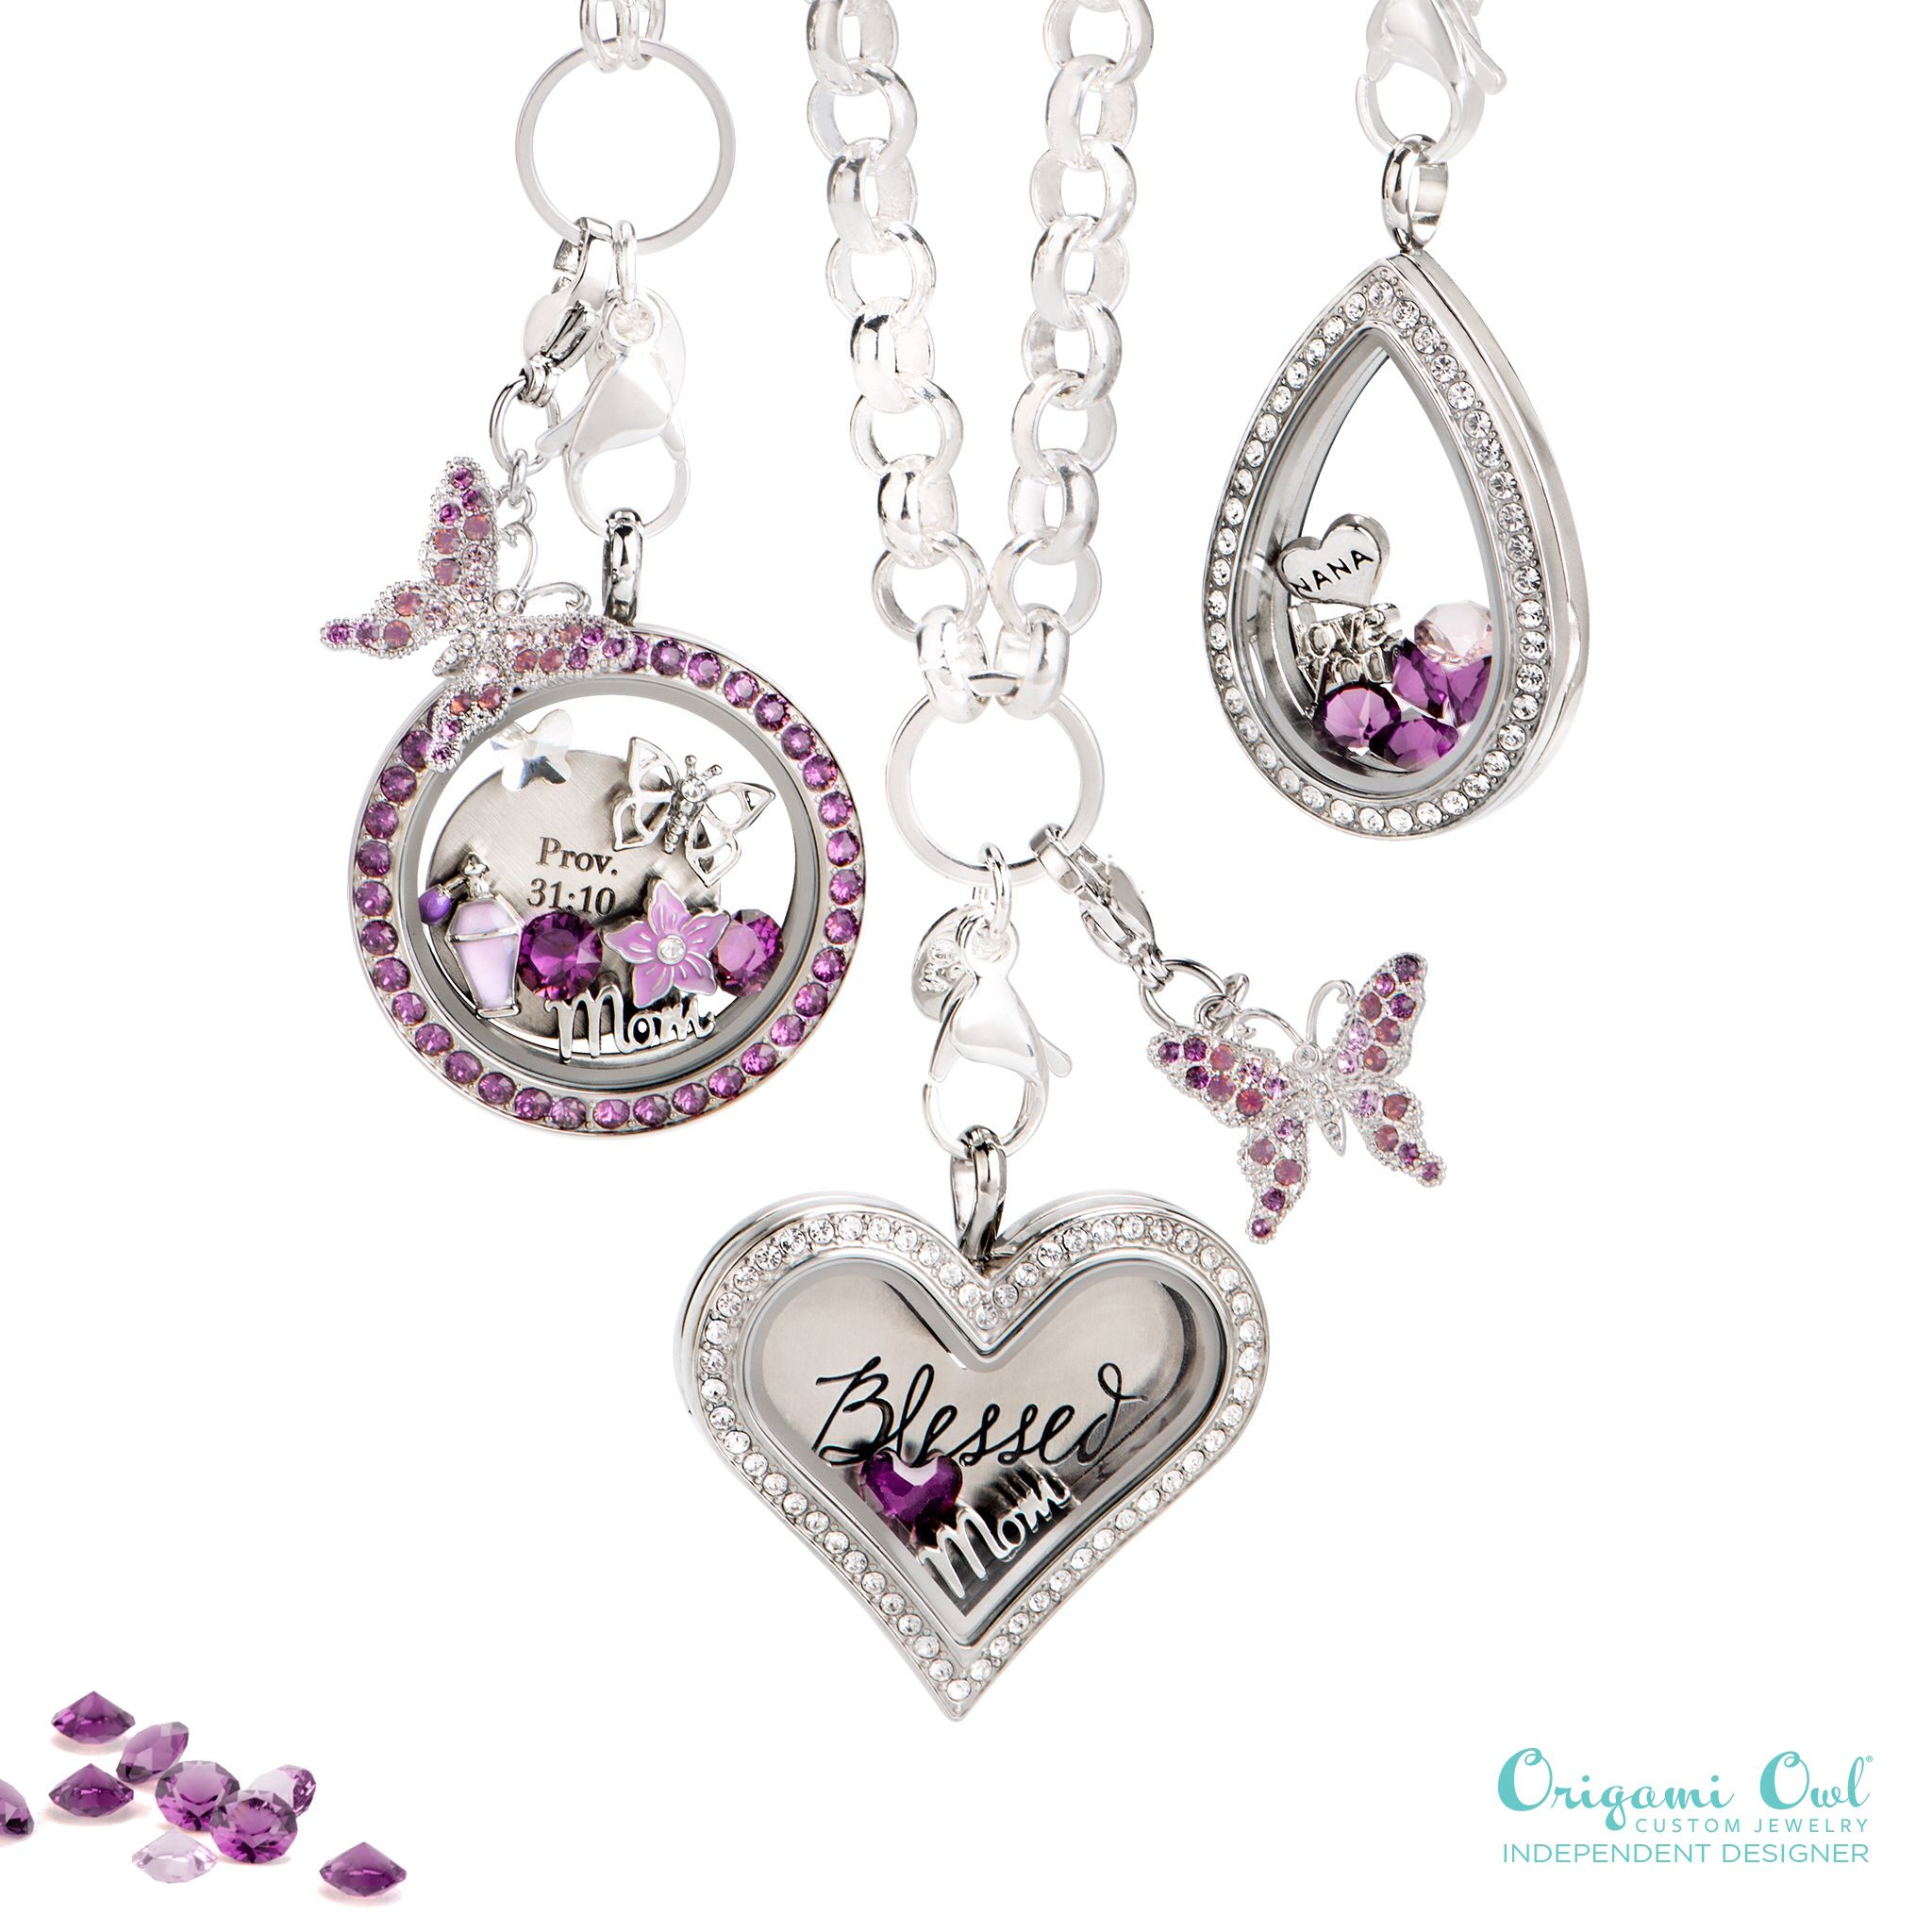 Purple is the color of creativity, wisdom, devotion, and strength. Make Mom feel like royalty this Mother's Day with an Origami Owl Living Locket featuring Crysrals by Swarovski!  Order @ http://www.triciagallagher.origamiowl.com/